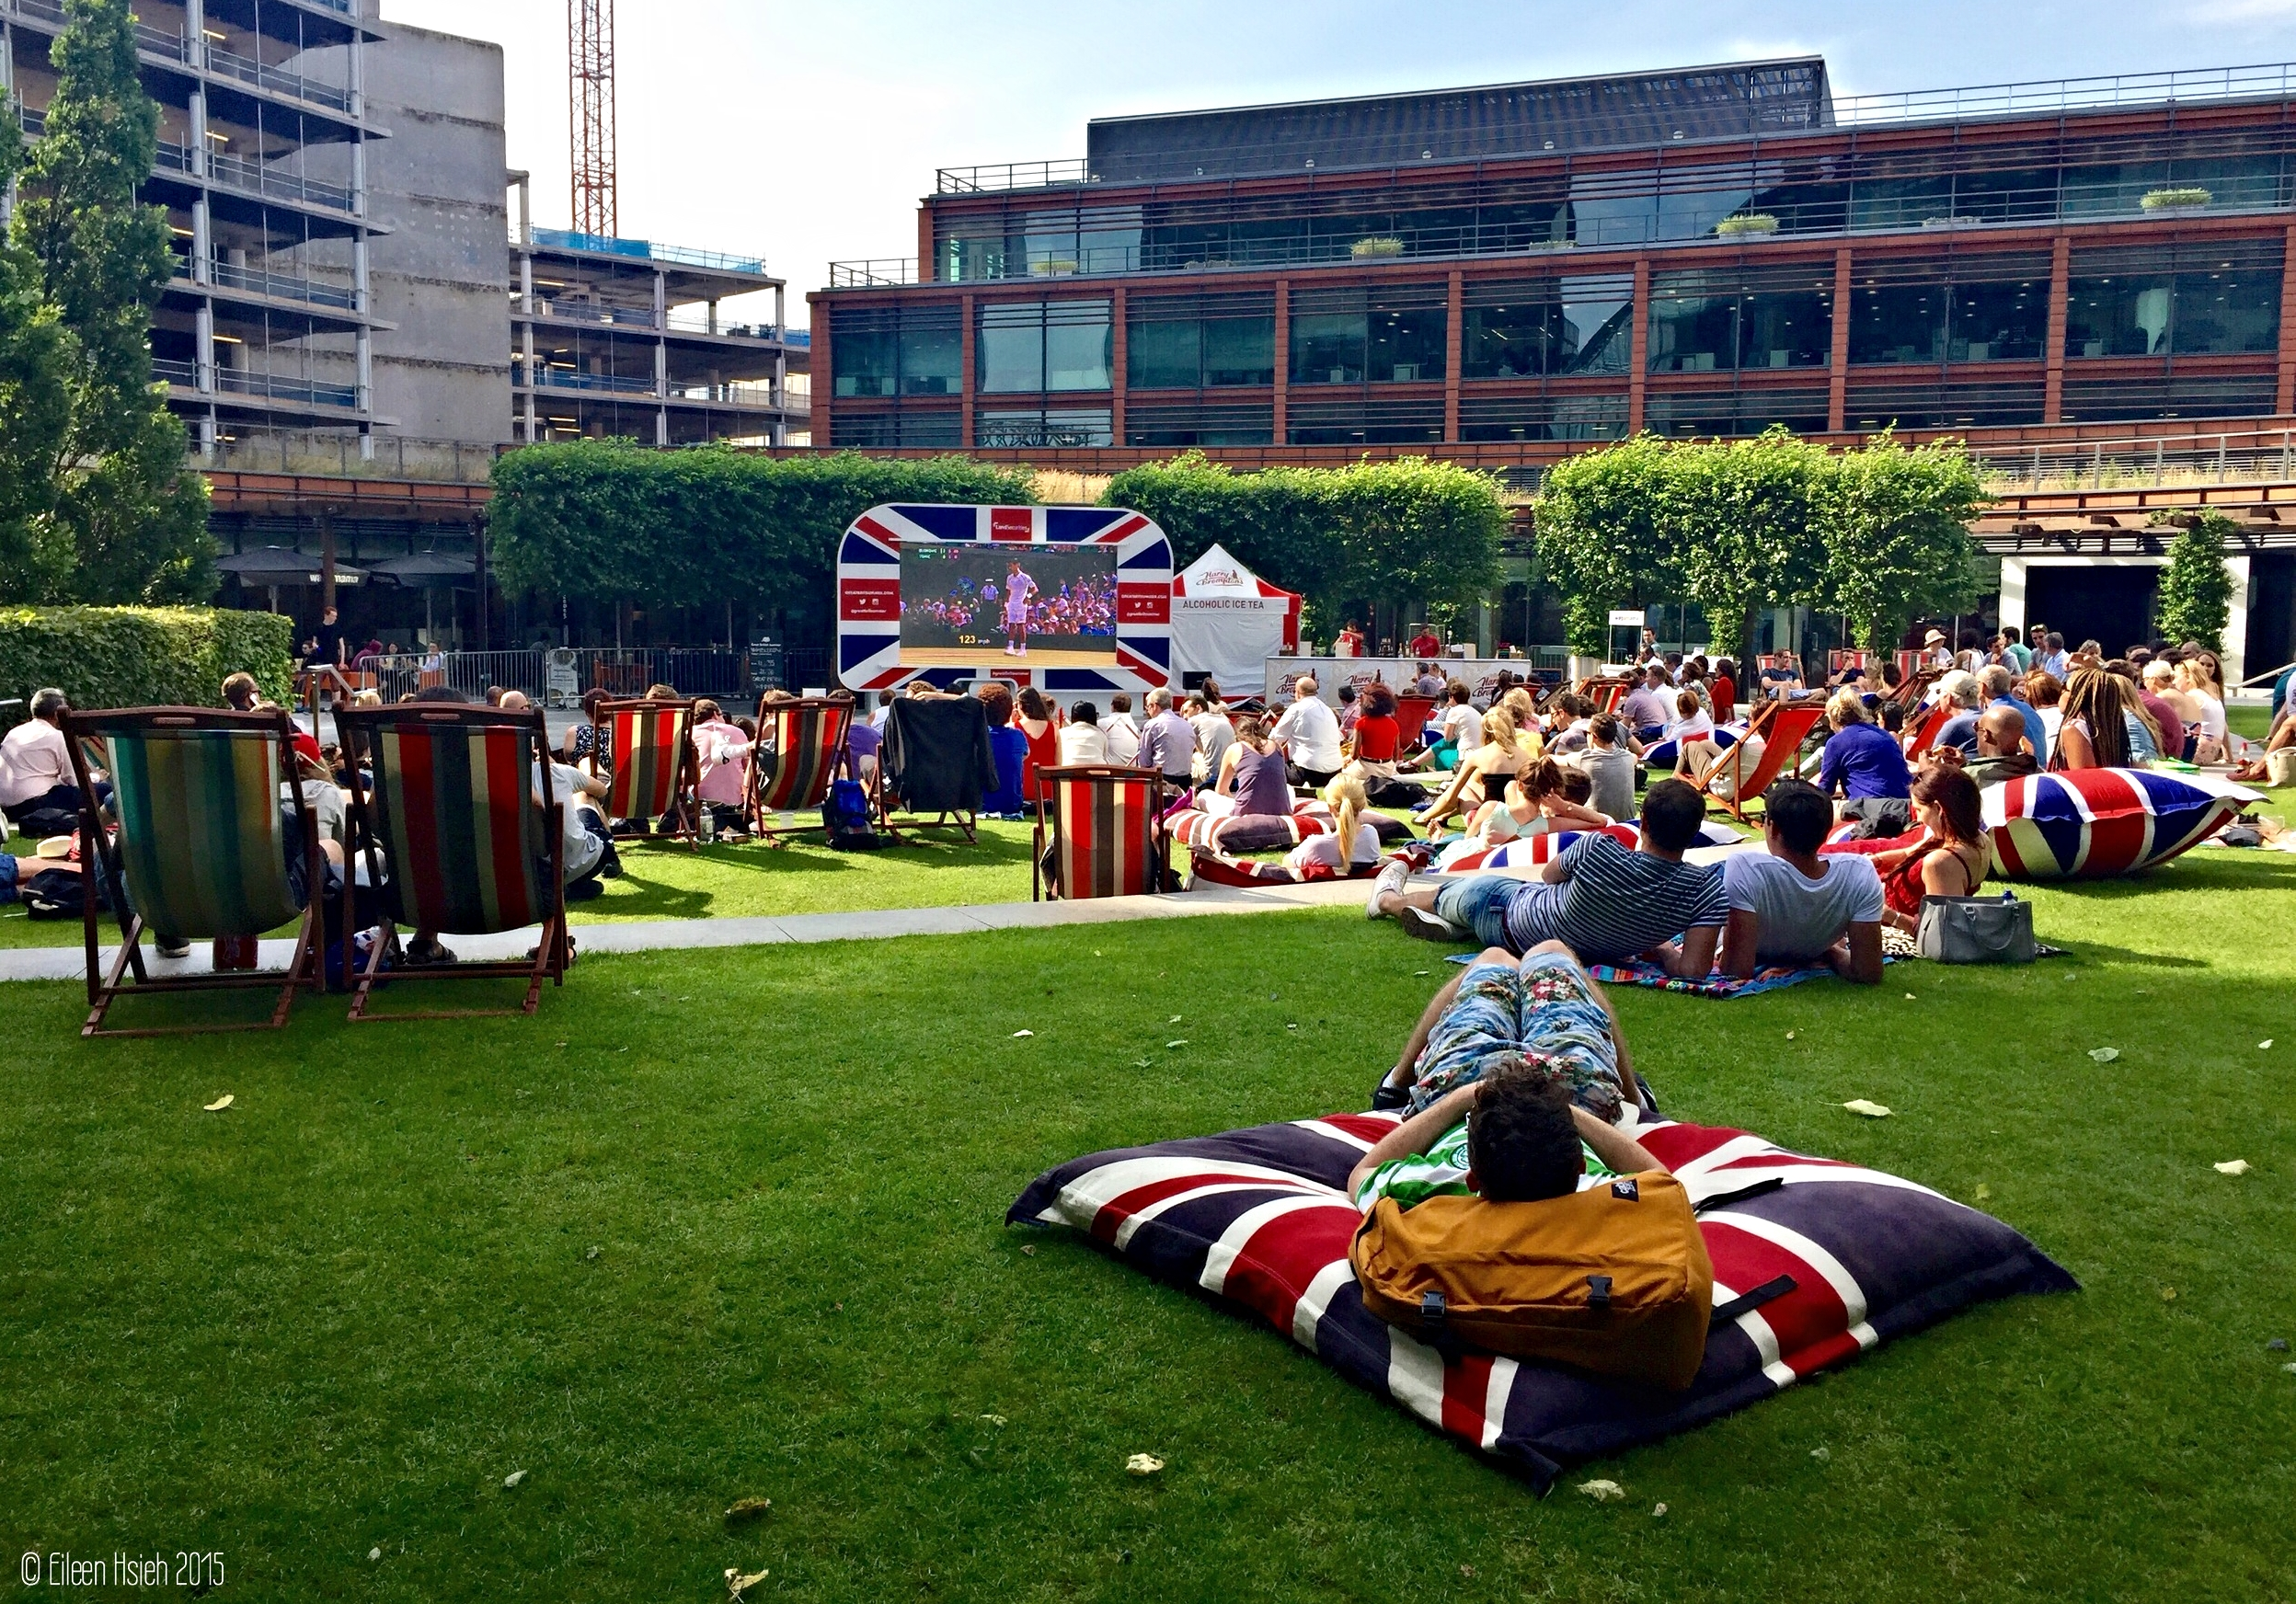 Just a short walk from Big Ben,Cardinal Place across fromVictoria station is a good place to catch the excitement of Wimbledon. 大笨鐘附近, 位於 Victoria 車站正對面的Cardinal Place 是觀賞溫布頓網球錦標賽的好地方。 © Eileen Hsieh 2015